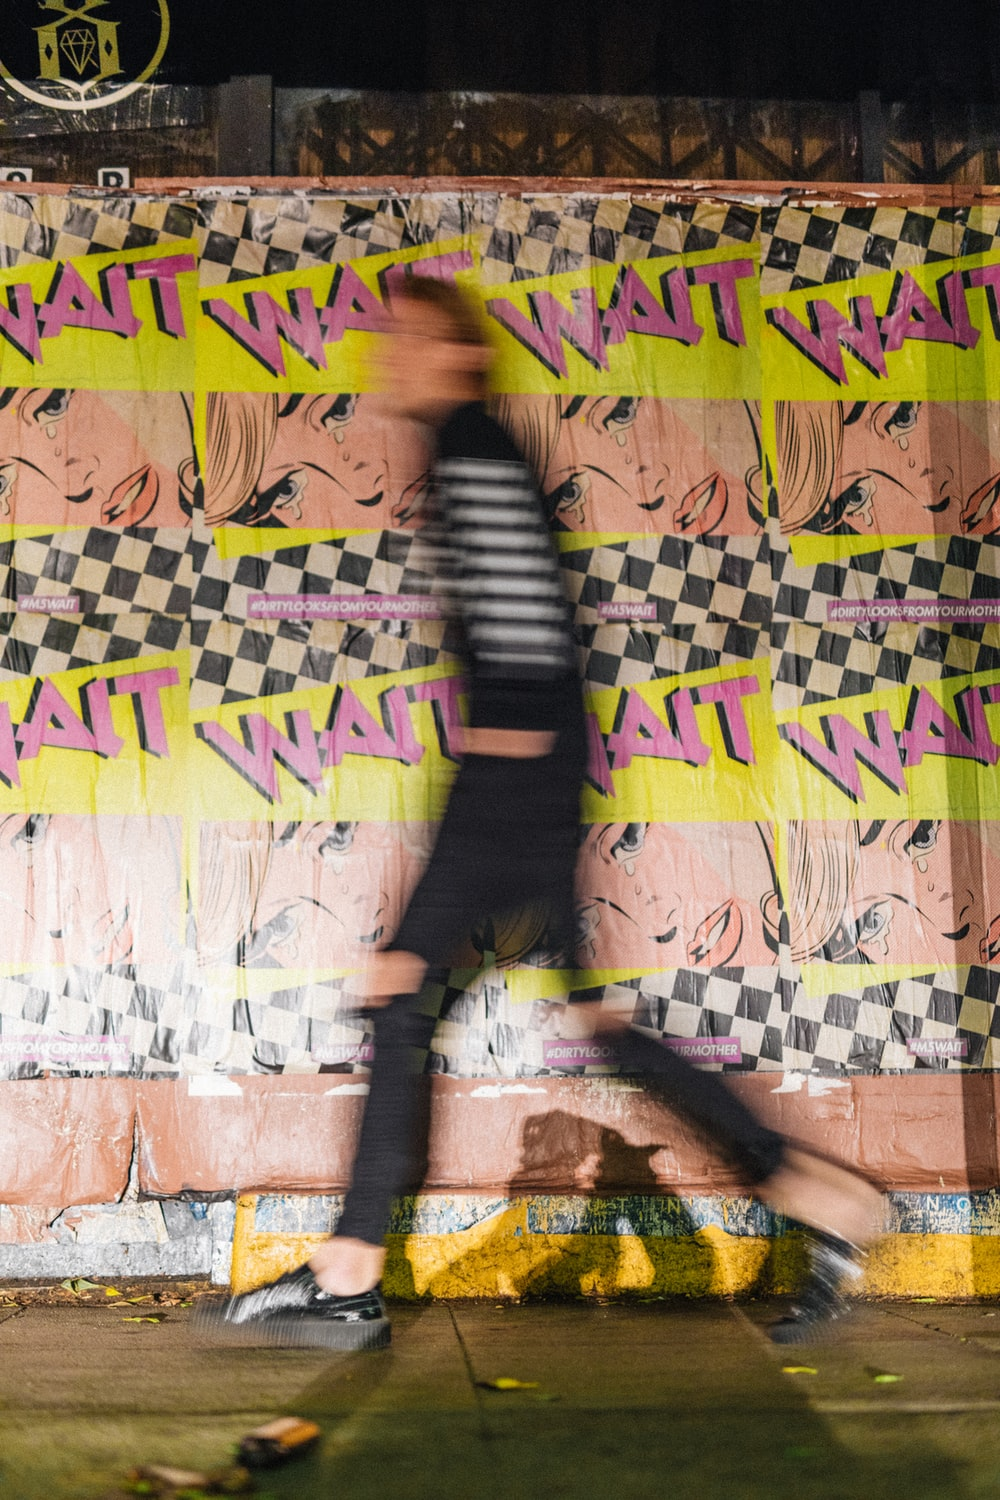 person passing by wait printed wall